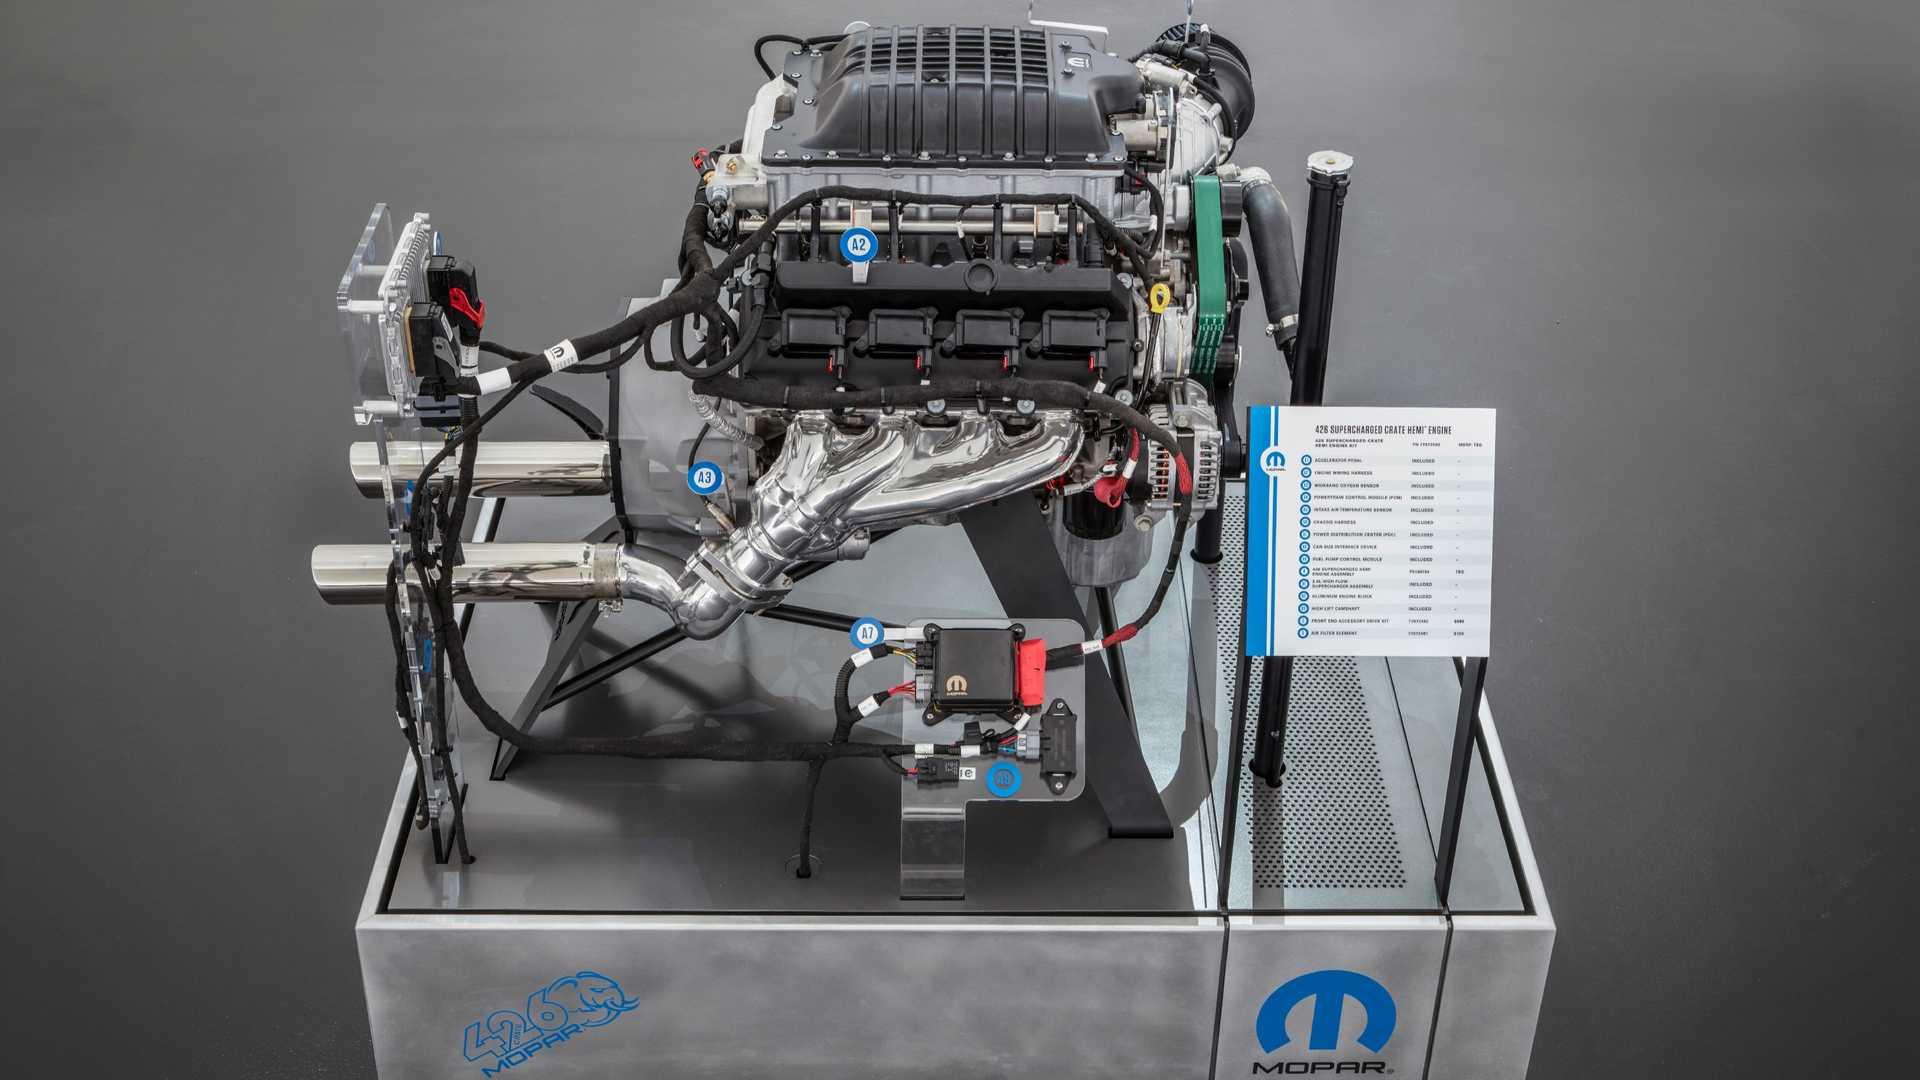 Mopar unveils 986 BHP 'Hellephant' engine; pre-orders begin